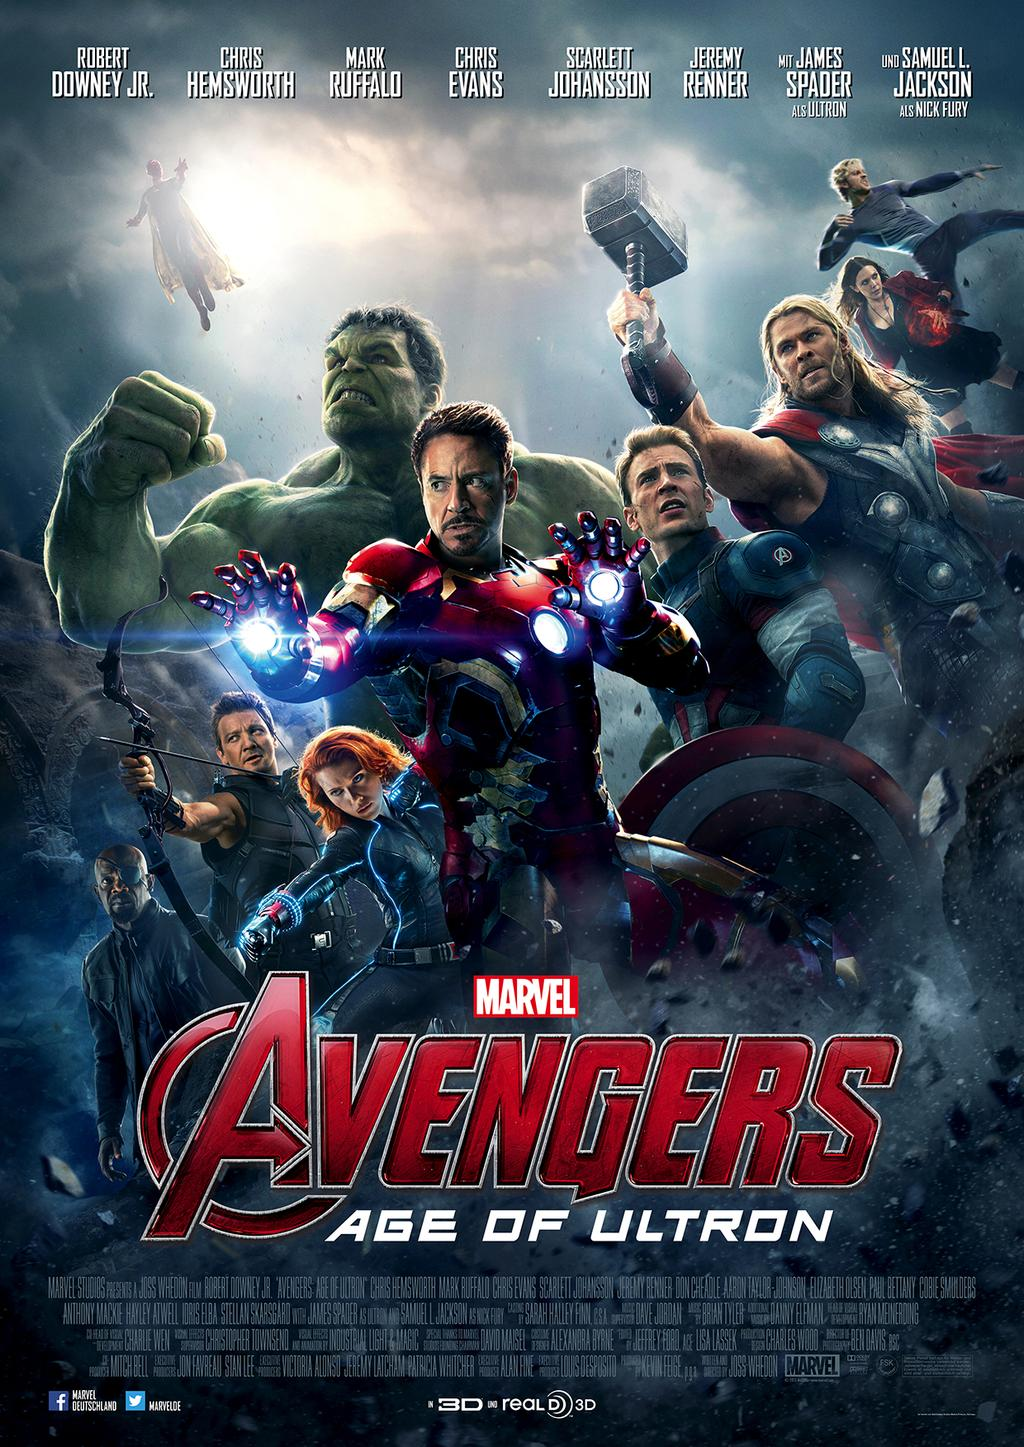 Avengers Age Of Ultron Review - OC Movie Reviews - Movie Reviews, Movie News, Documentary Reviews, Short Films, Short Film Reviews, Trailers, Movie Trailers, Interviews, film reviews, film news, hollywood, indie films, documentarie